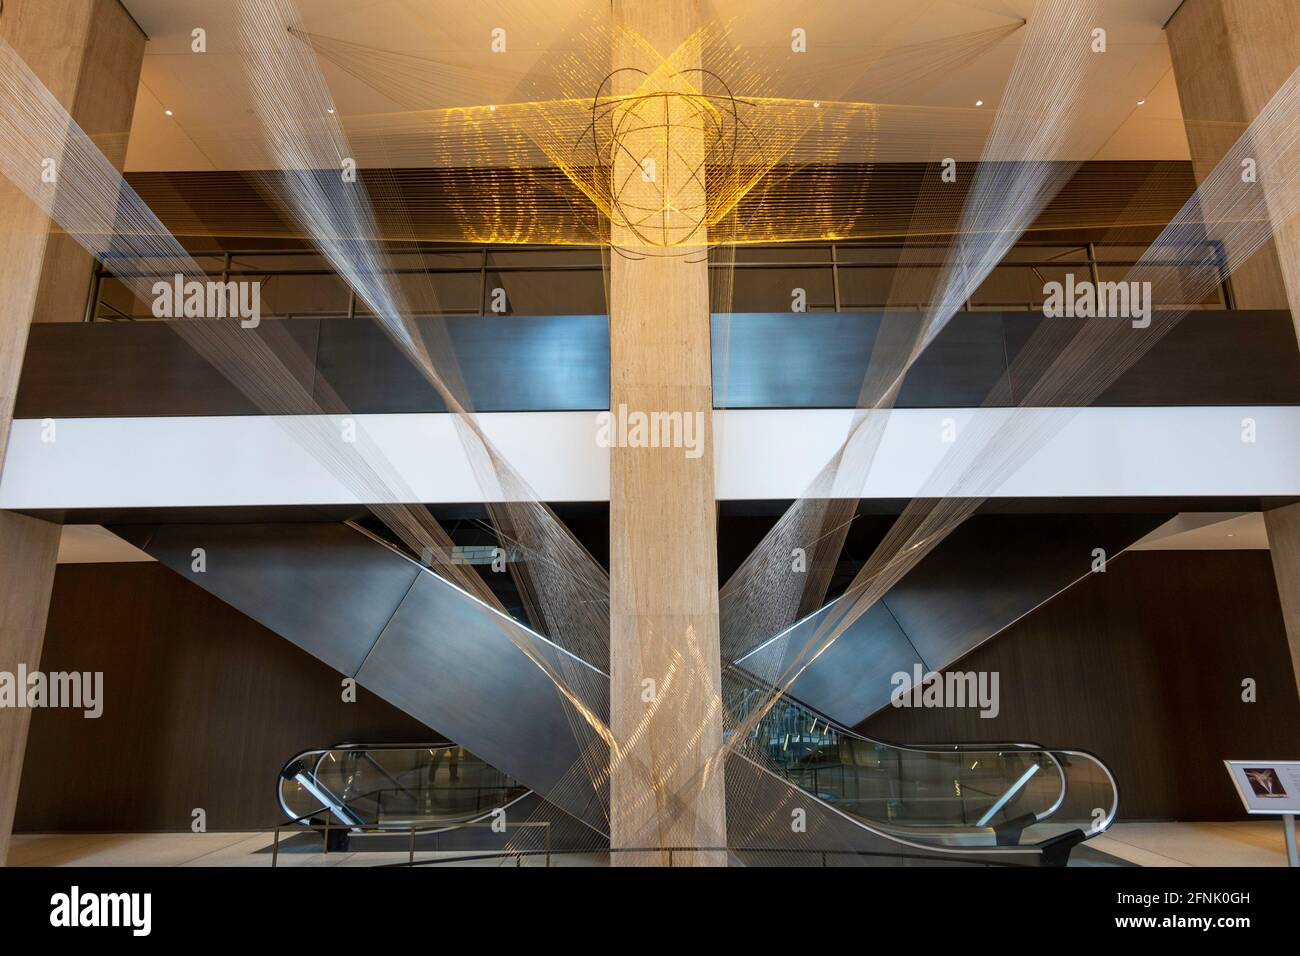 17 Pan Am Building High Resolution Stock Photography and Images   Alamy